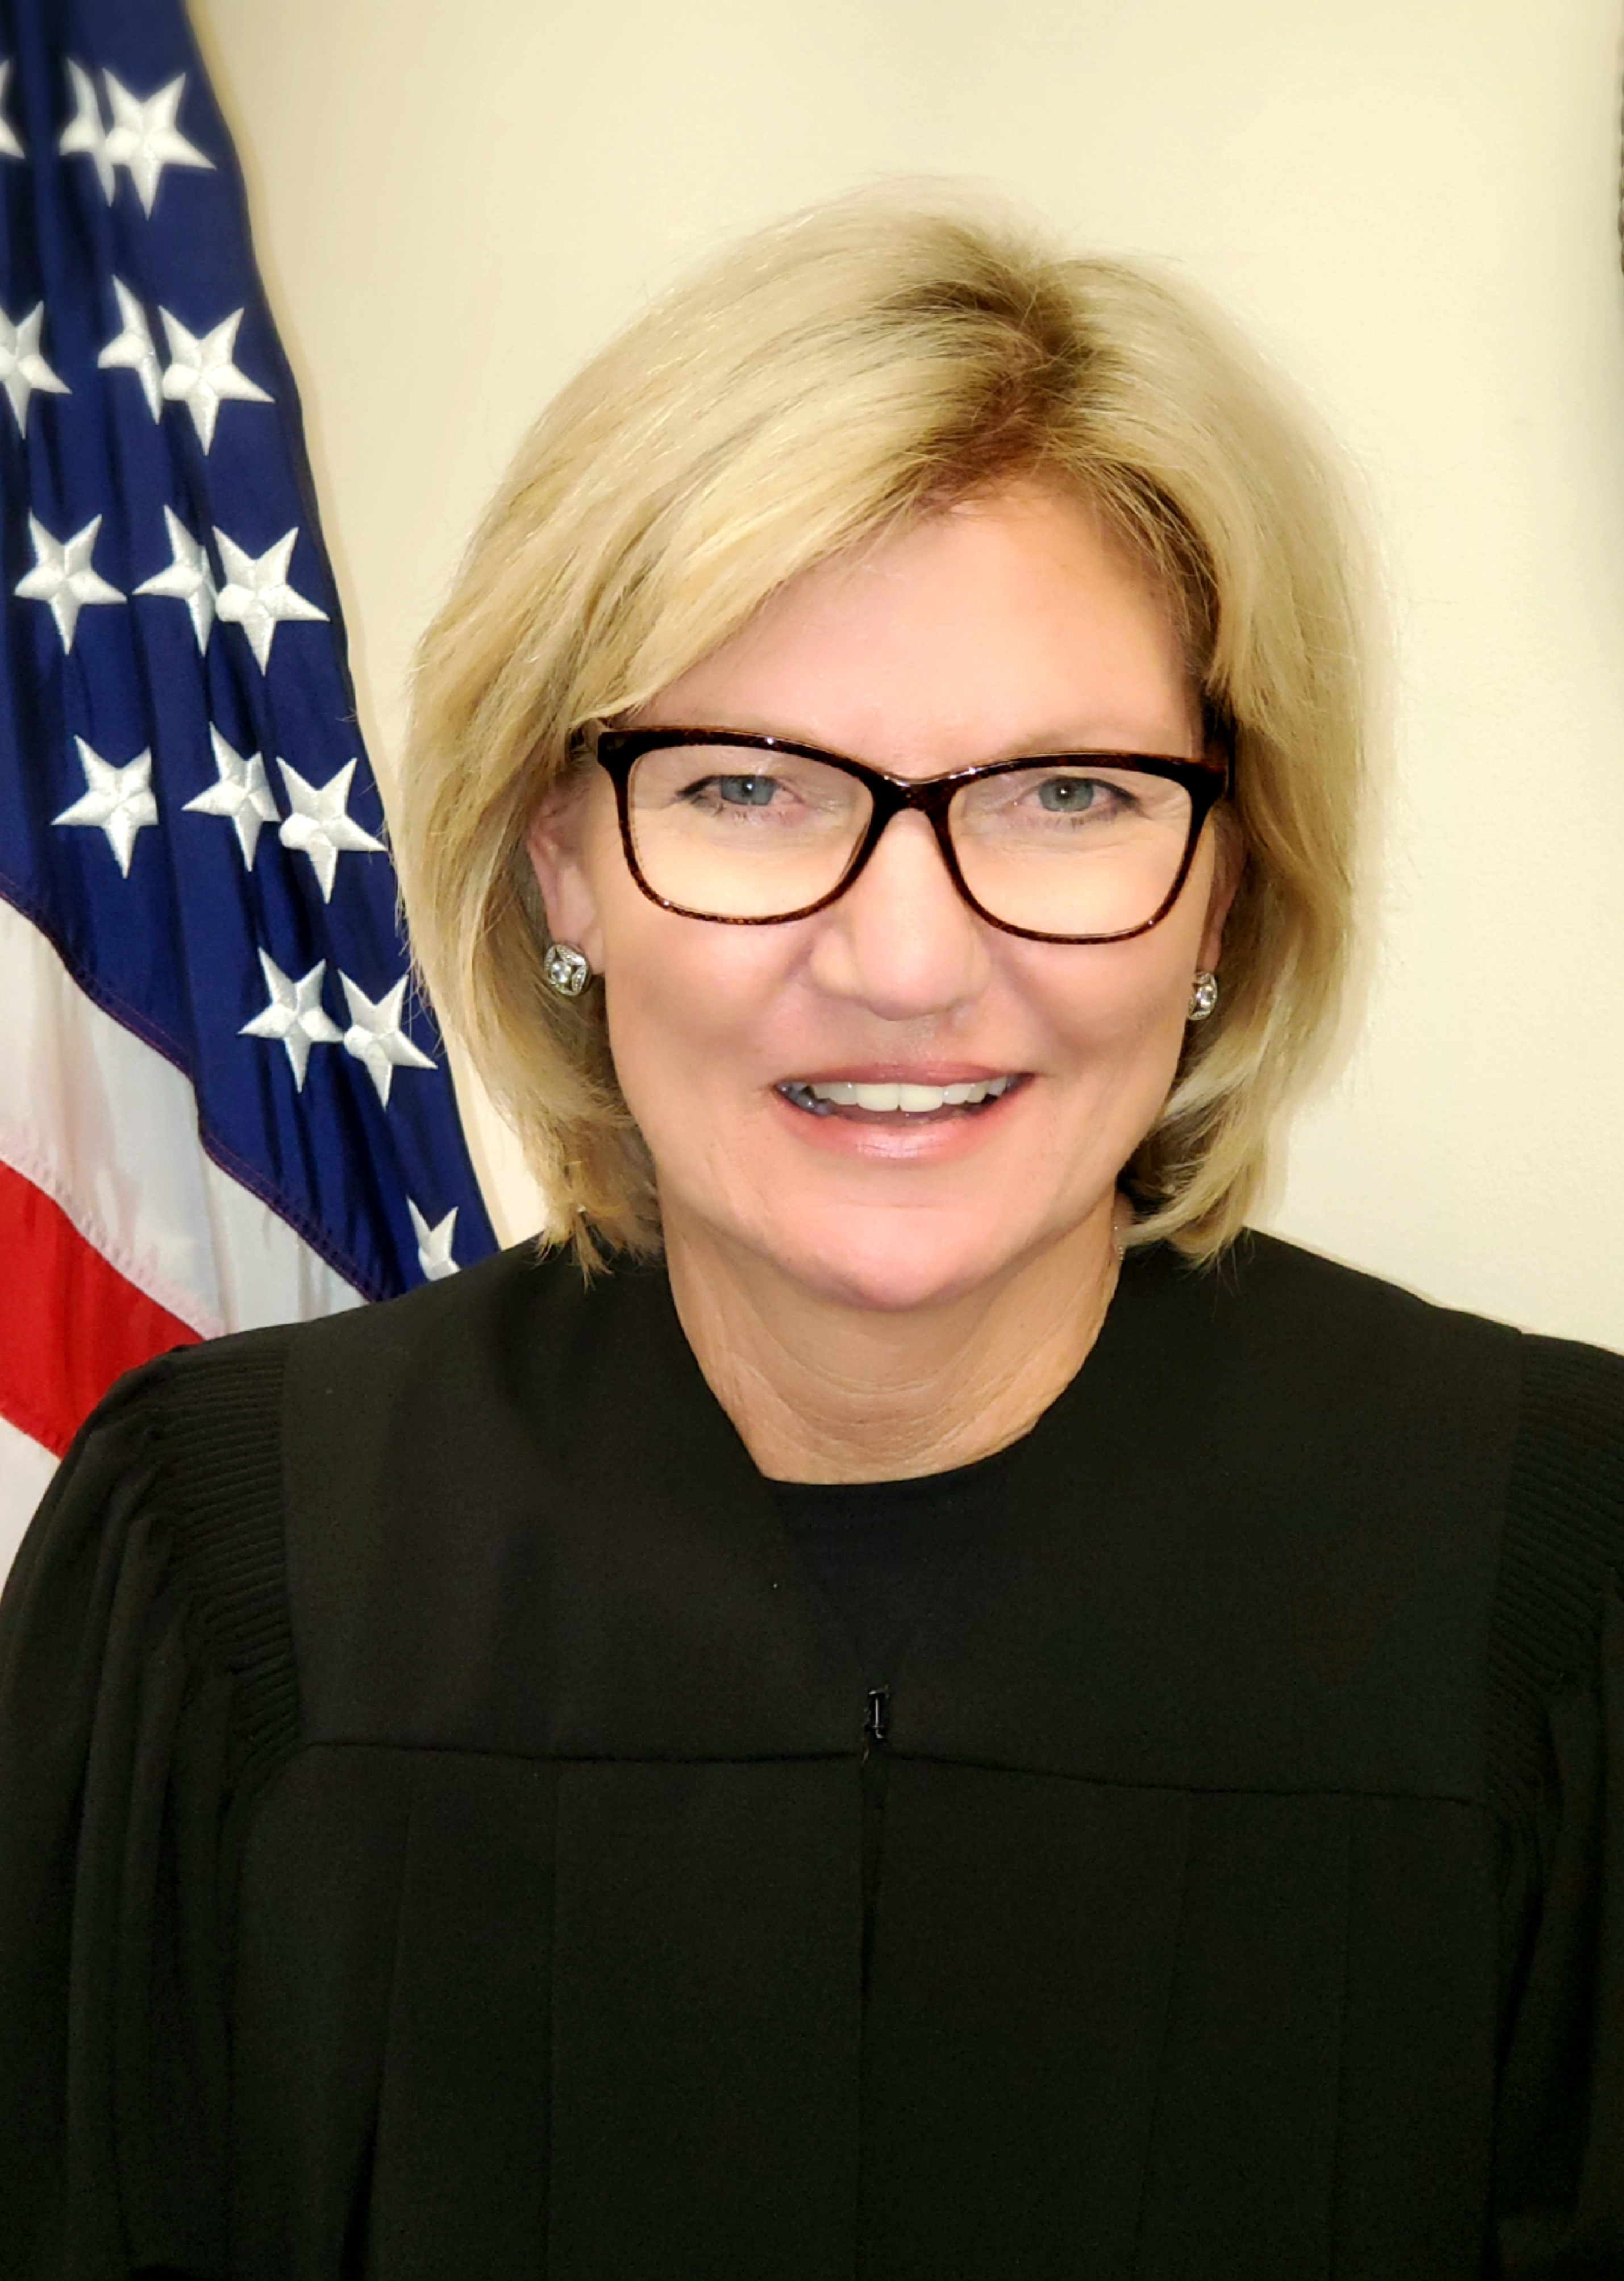 Click to enlarge picture of Circuit Judge Jennifer Taylor. Opens in new window.